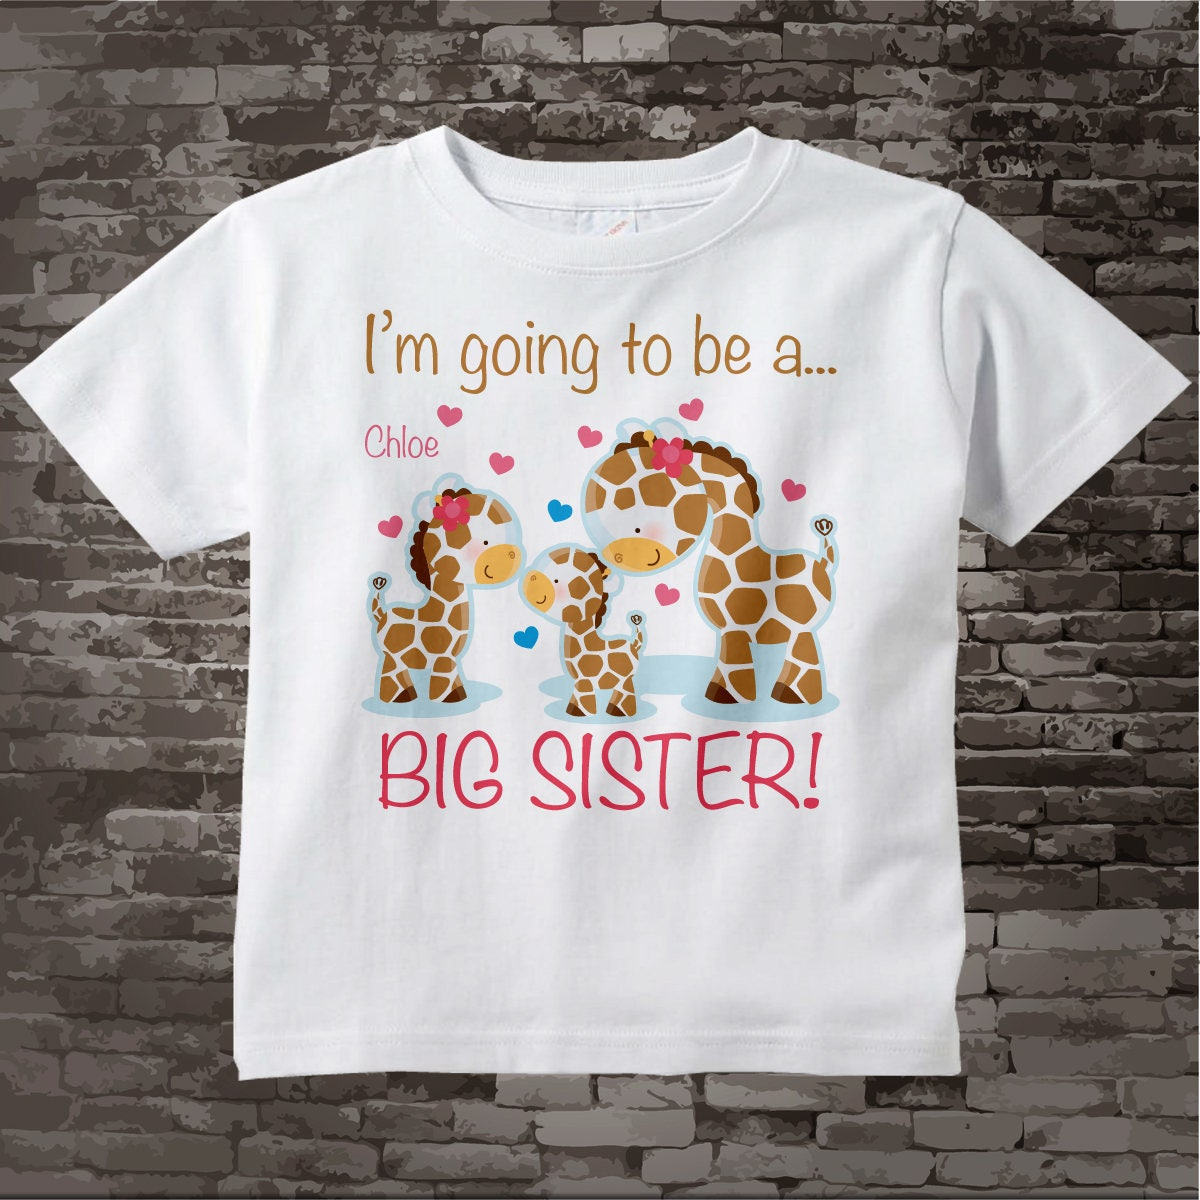 ... Personalized Big Sister Giraffe Shirt with three siblings older girl  baby boy 09032014b. gallery photo ... 5d62f89409d4d